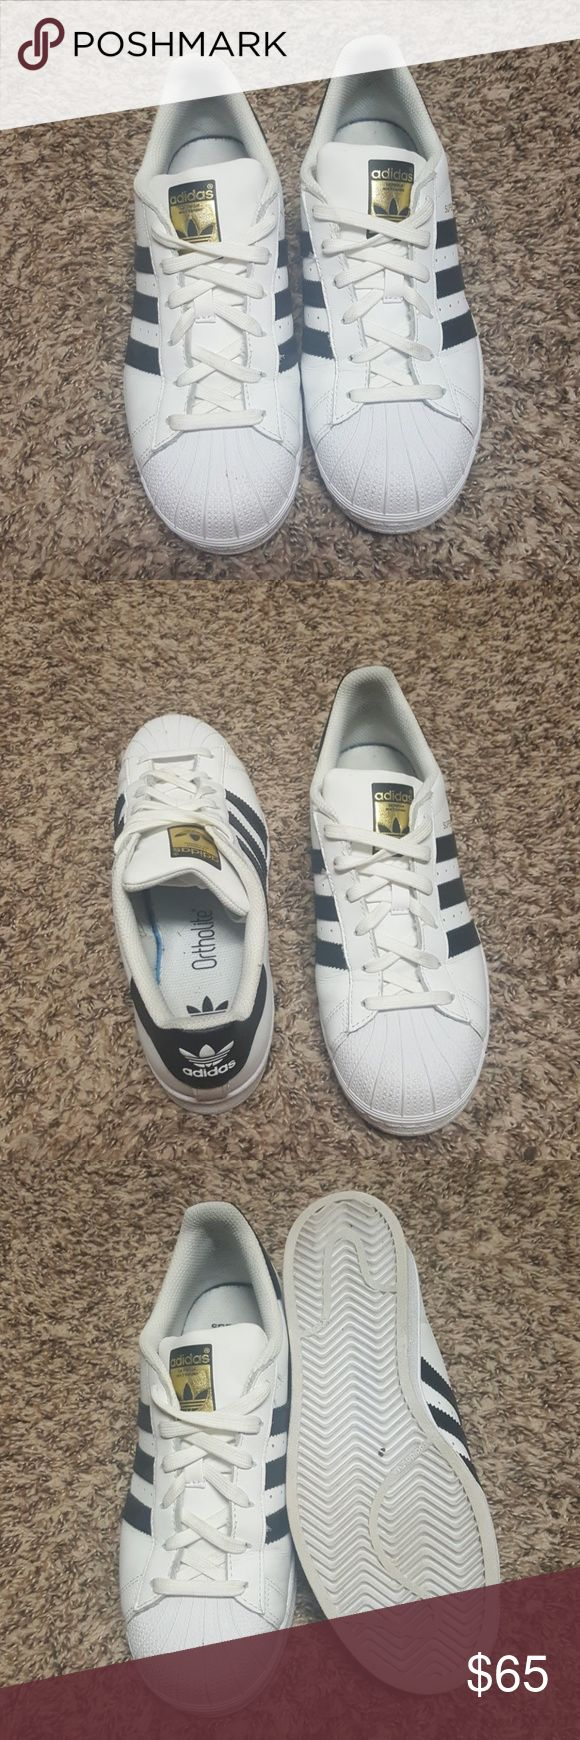 Adidas Superstar original Super classic Adidas that you can rock with any outfit. Worn twice. Like new condition. Kids size 6. Fits womens 8, 8.5. adidas Shoes Sneakers